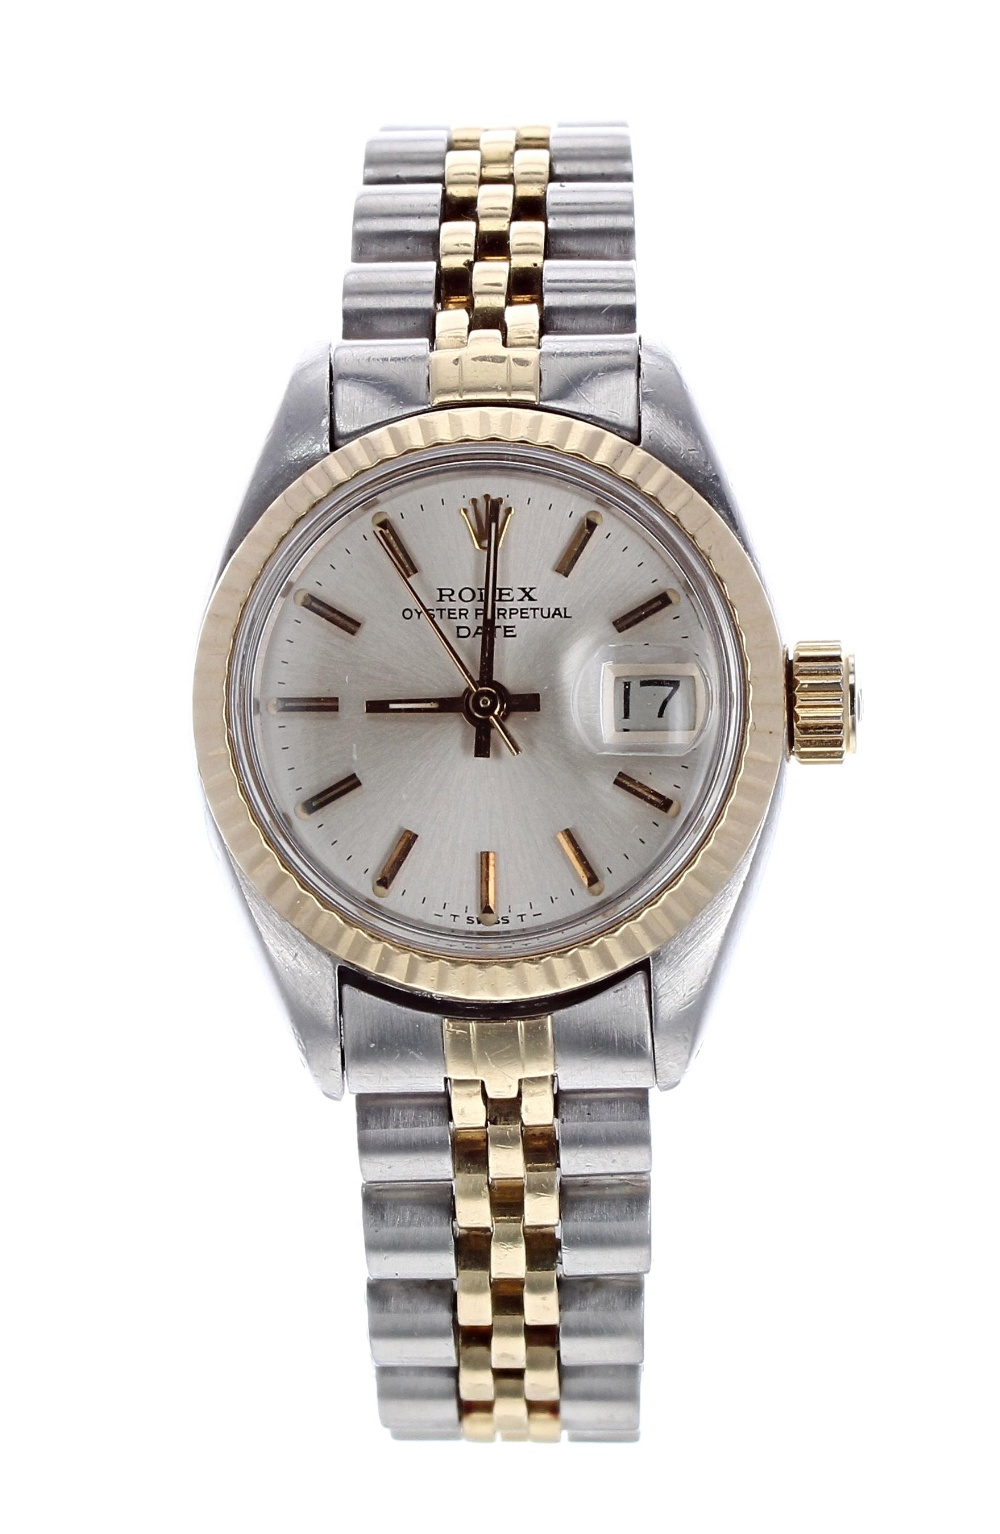 Lot 30 - Rolex Oyster Perpetual Datejust gold and stainless steel lady's bracelet watch, ref. 6917, circa